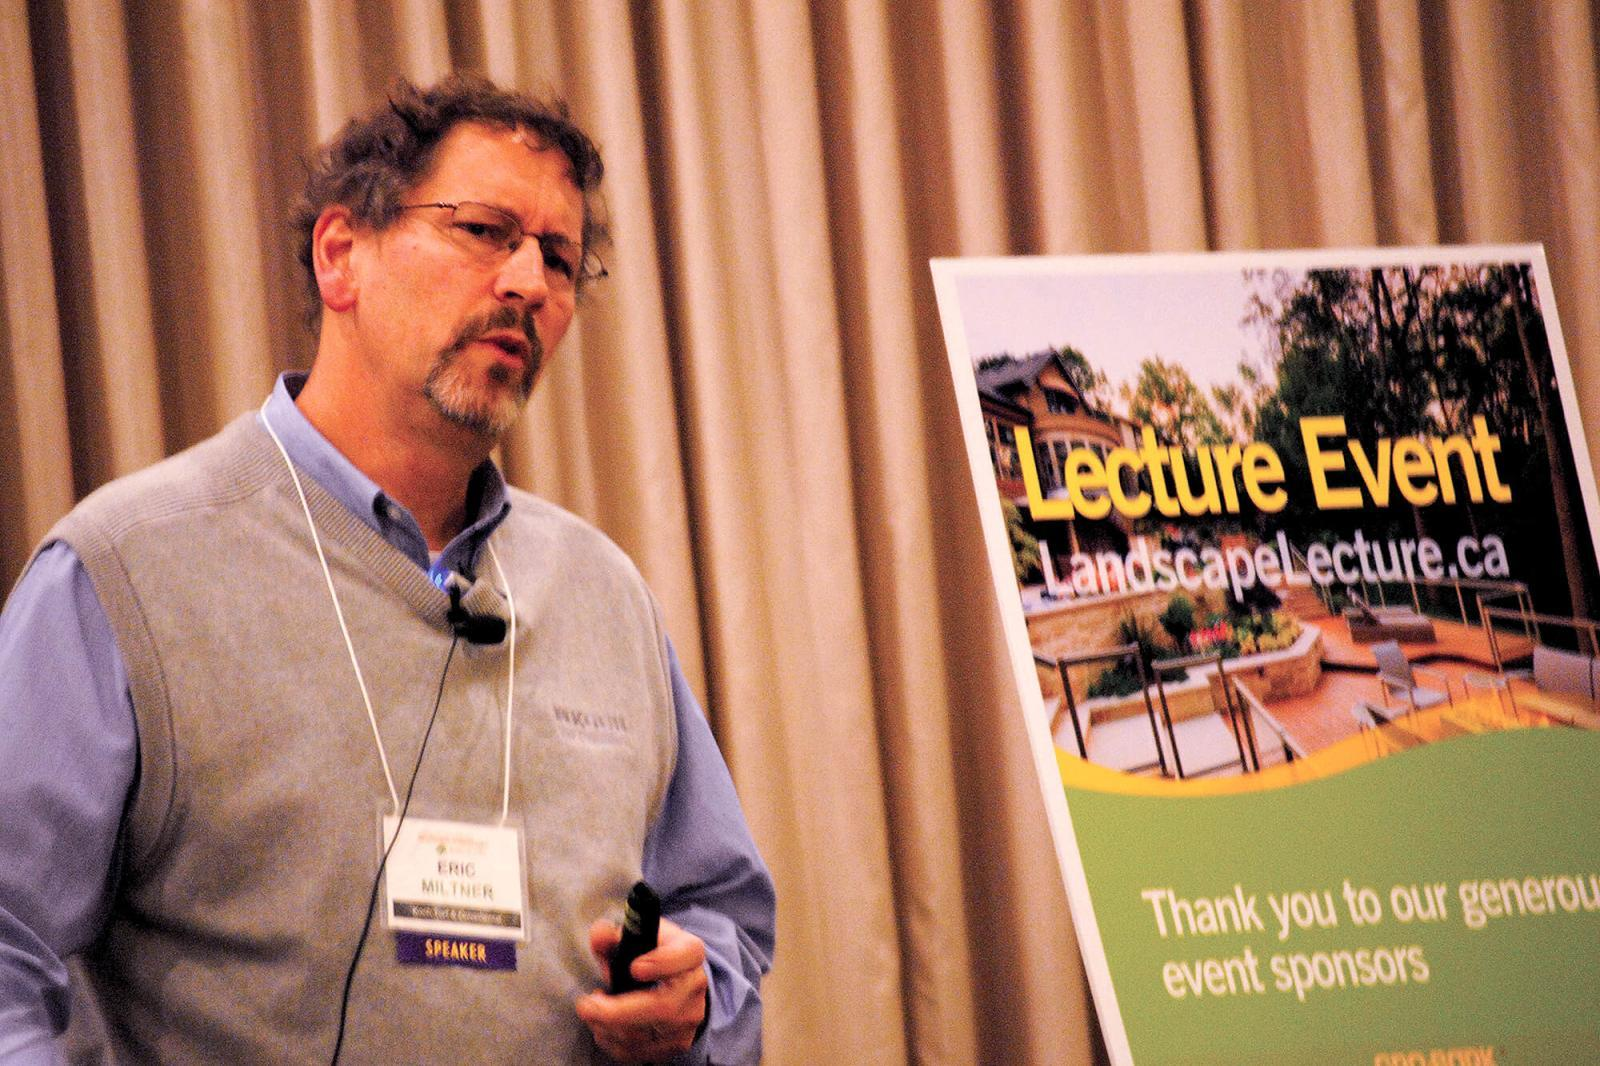 Grounds management added to popular lecture series